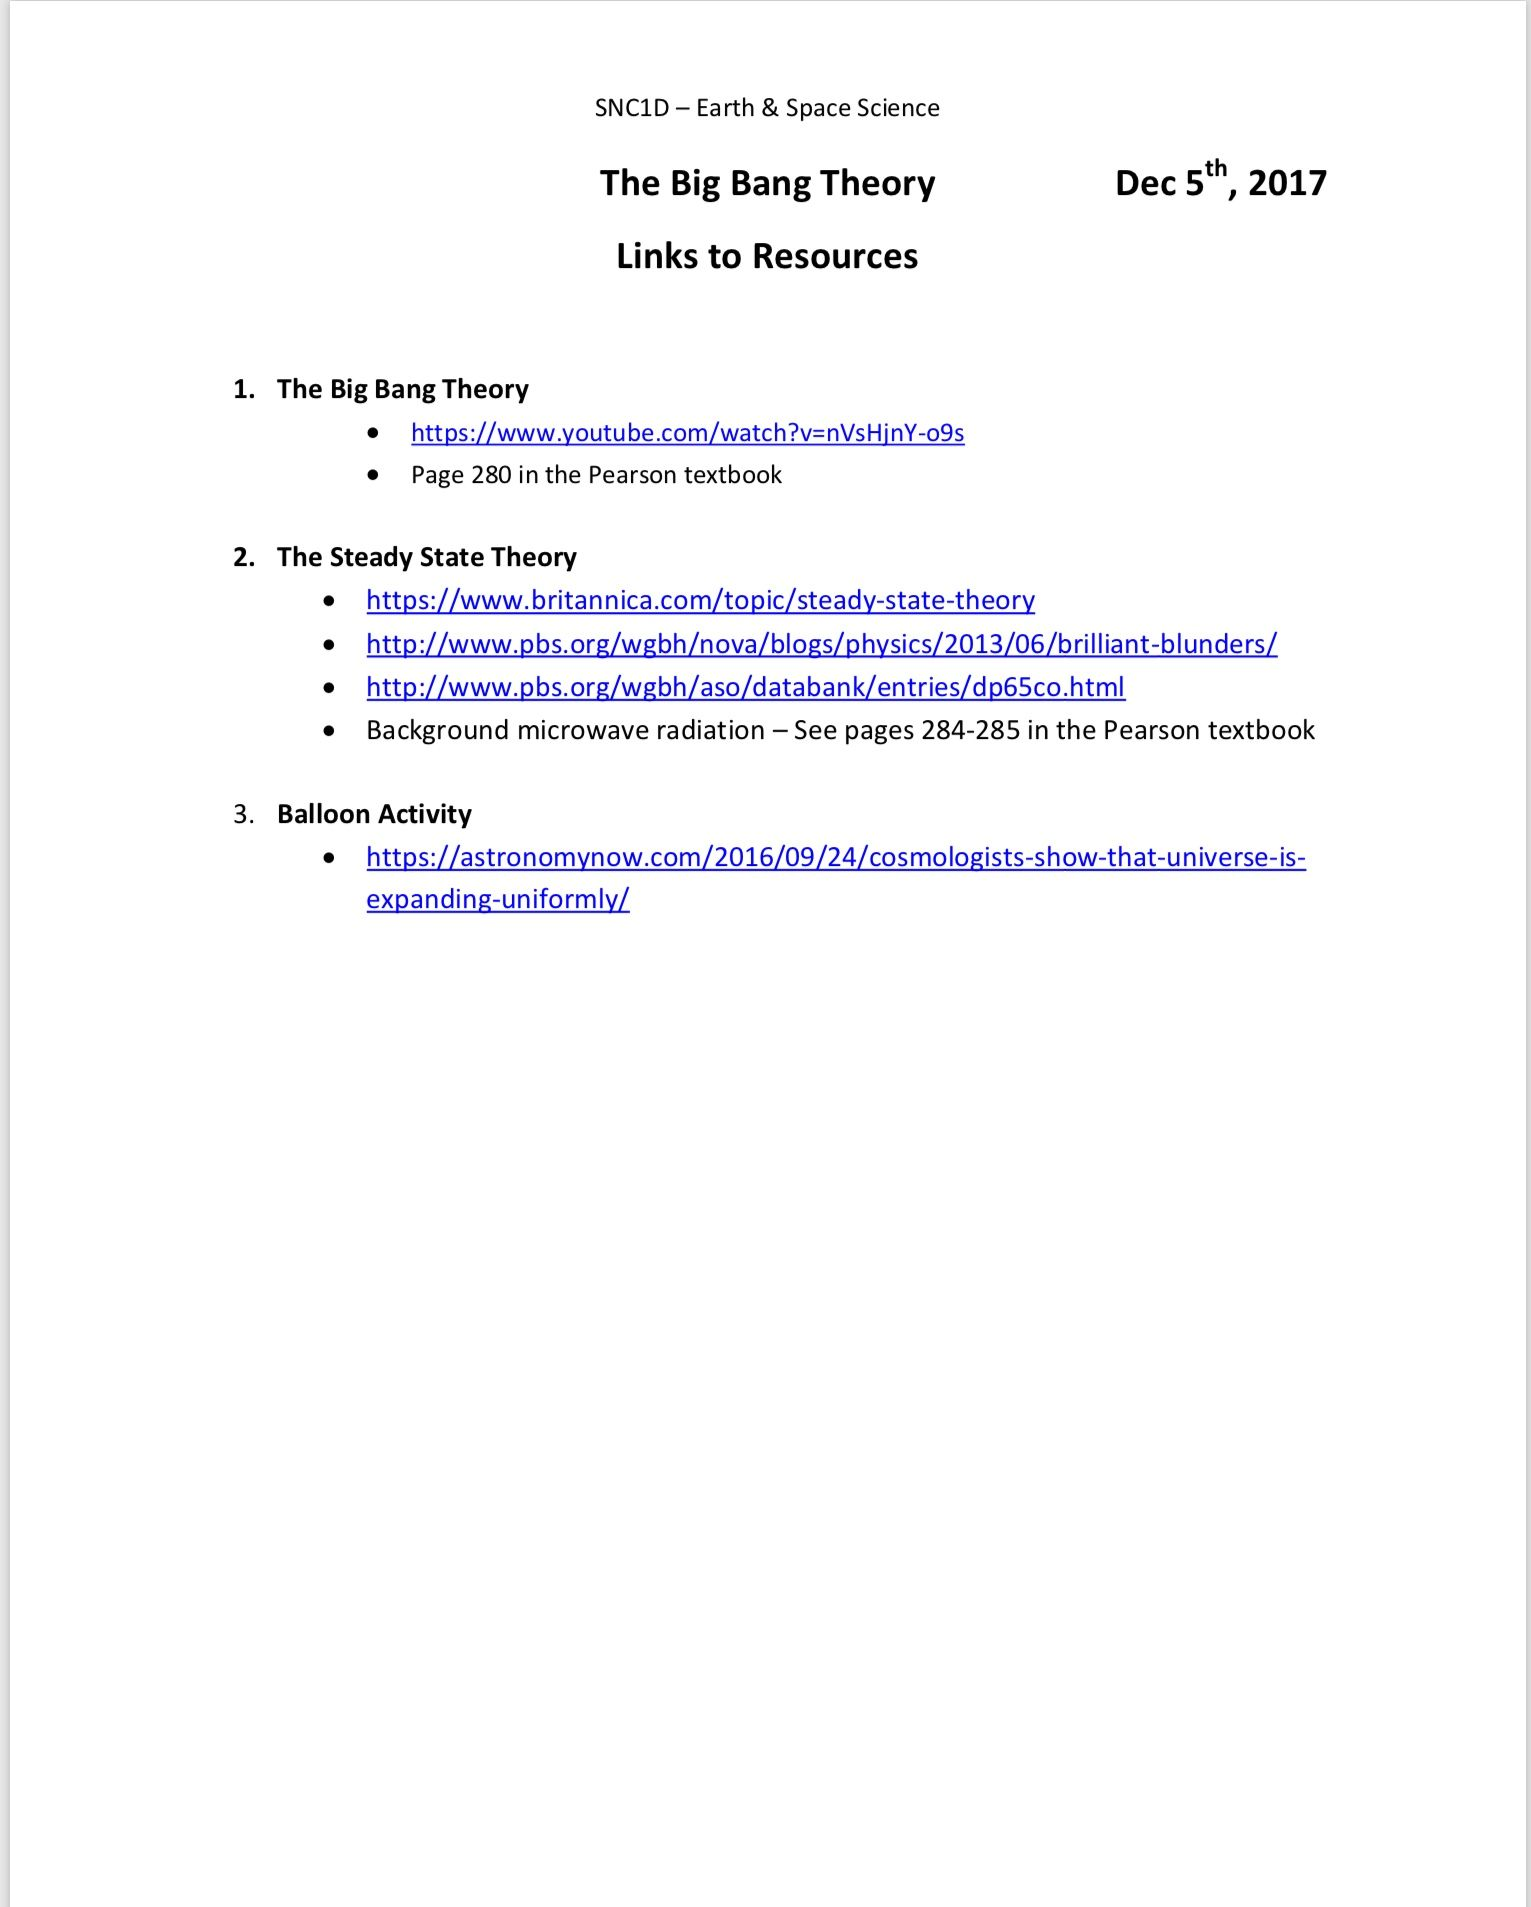 worksheet How The Universe Works Big Bang Worksheet the big bang theory links to resources december 52017 snc1d 52017